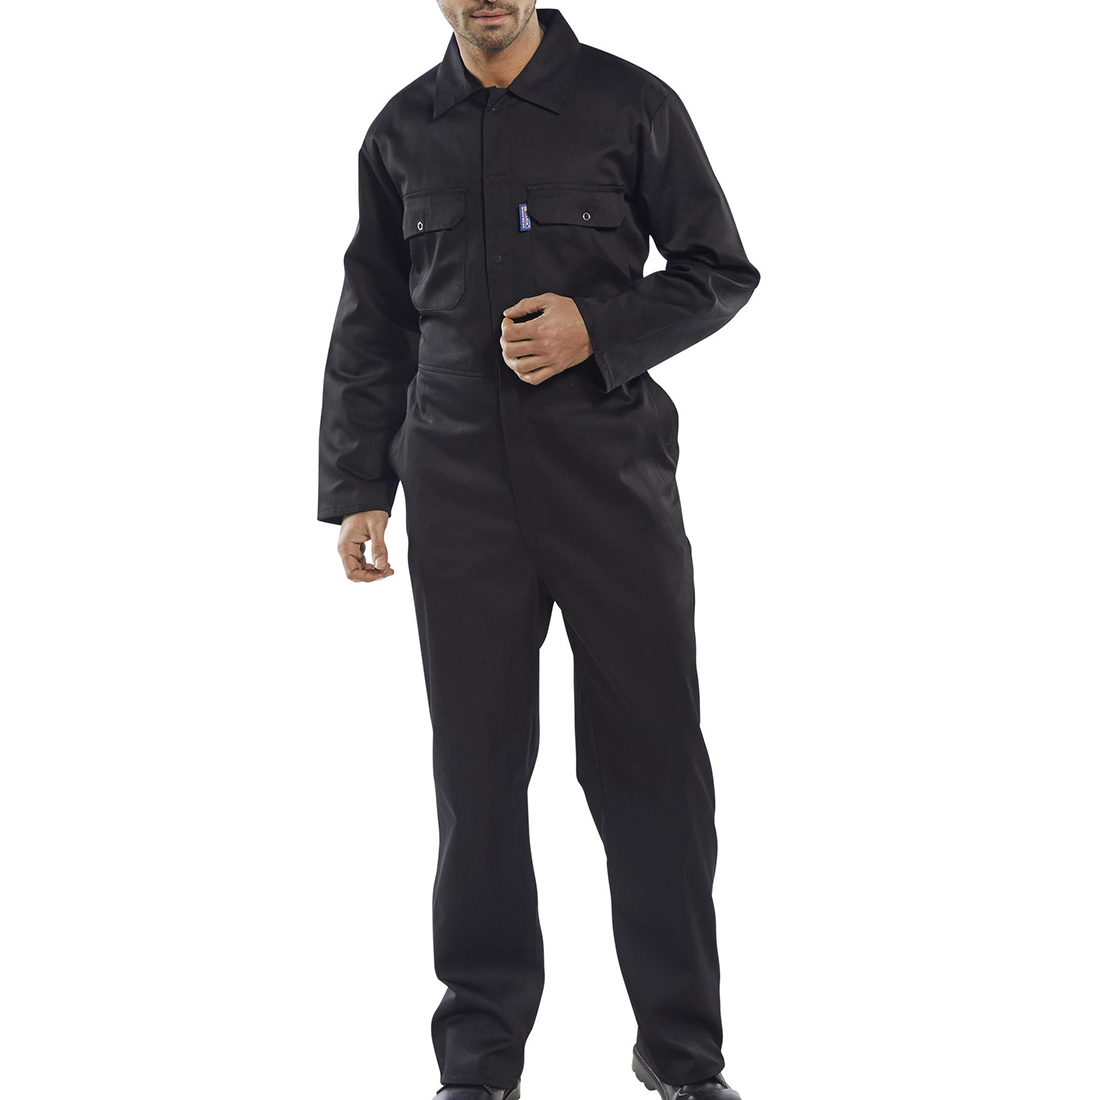 Coverall Basic with Popper Front Opening Polycotton XXXXLarge Black Ref RPCBSBL54 Approx 3 Day Leadtime